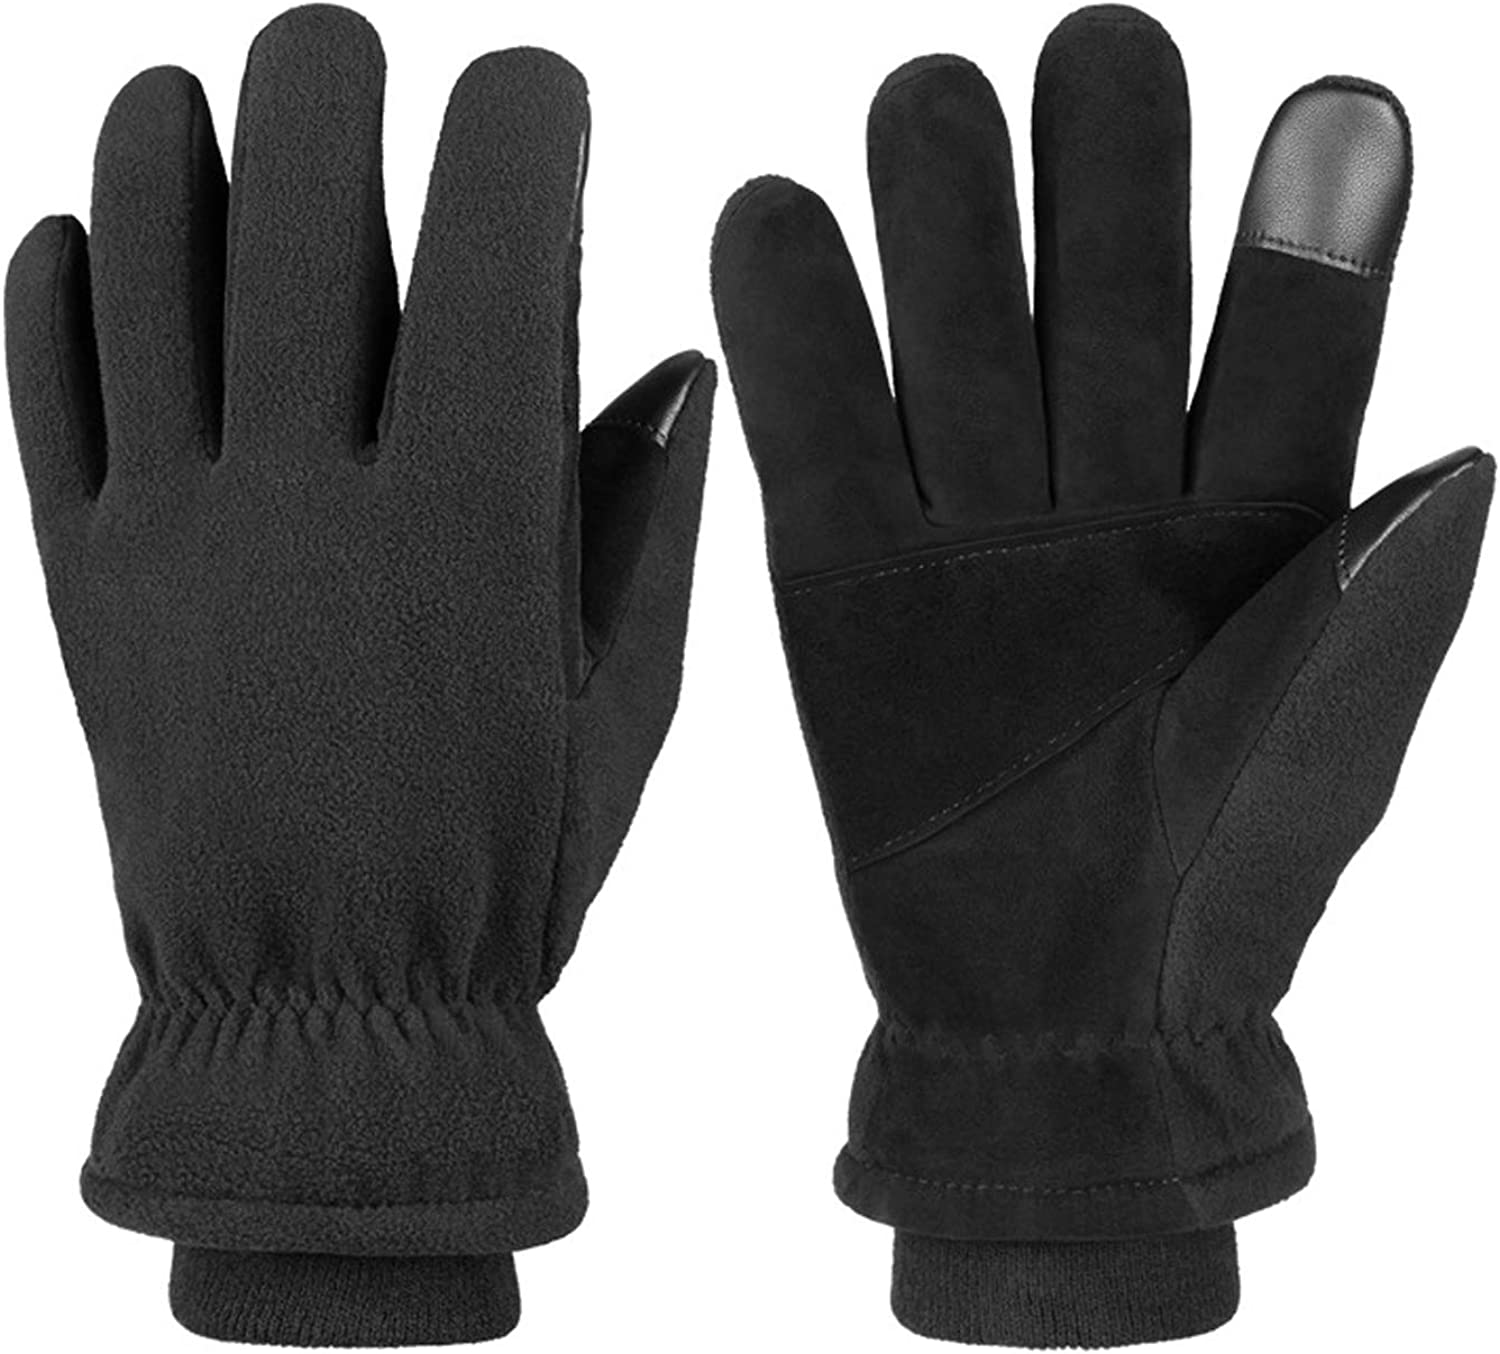 Two Layers of Deerskin Winter Cold Protective Warm Gloves Waterproof Cycling Windproof Skiing for Outdoor Sport and Work